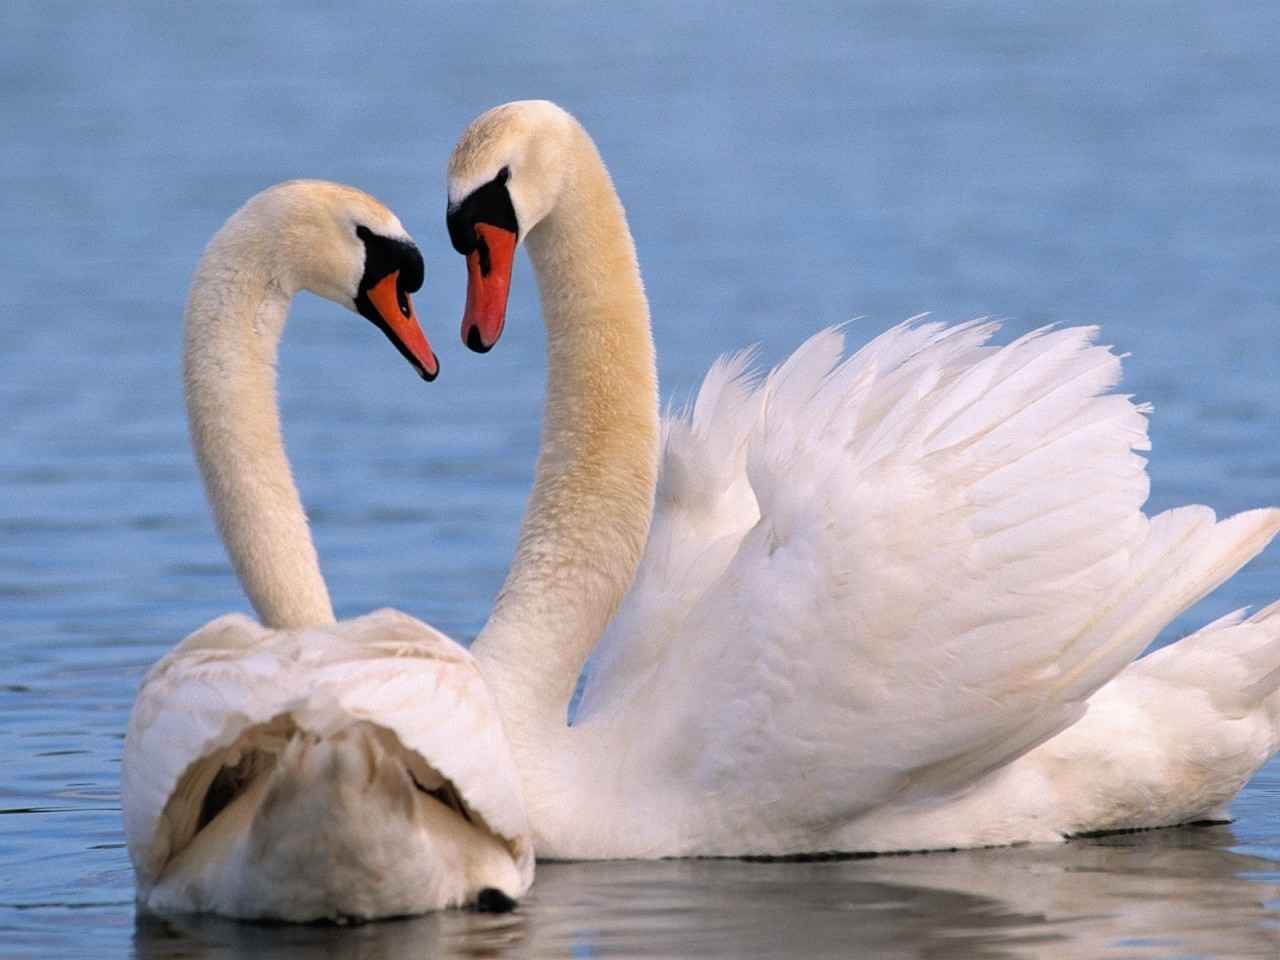 46828 download wallpaper Animals, Birds, Swans screensavers and pictures for free